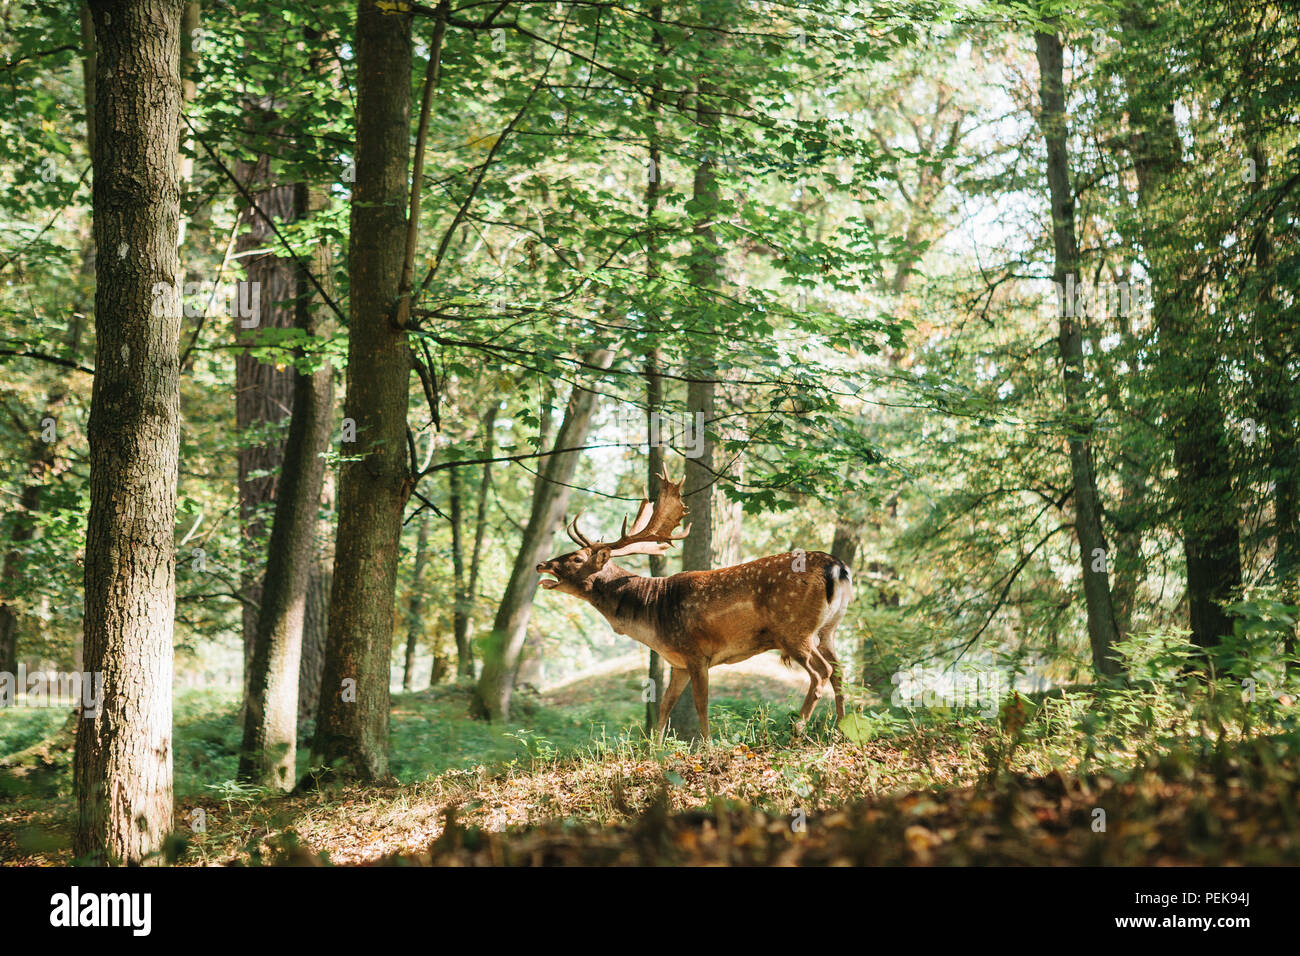 Beautiful deer with branched horns stands on a hill in an autumn forest among trees Stock Photo